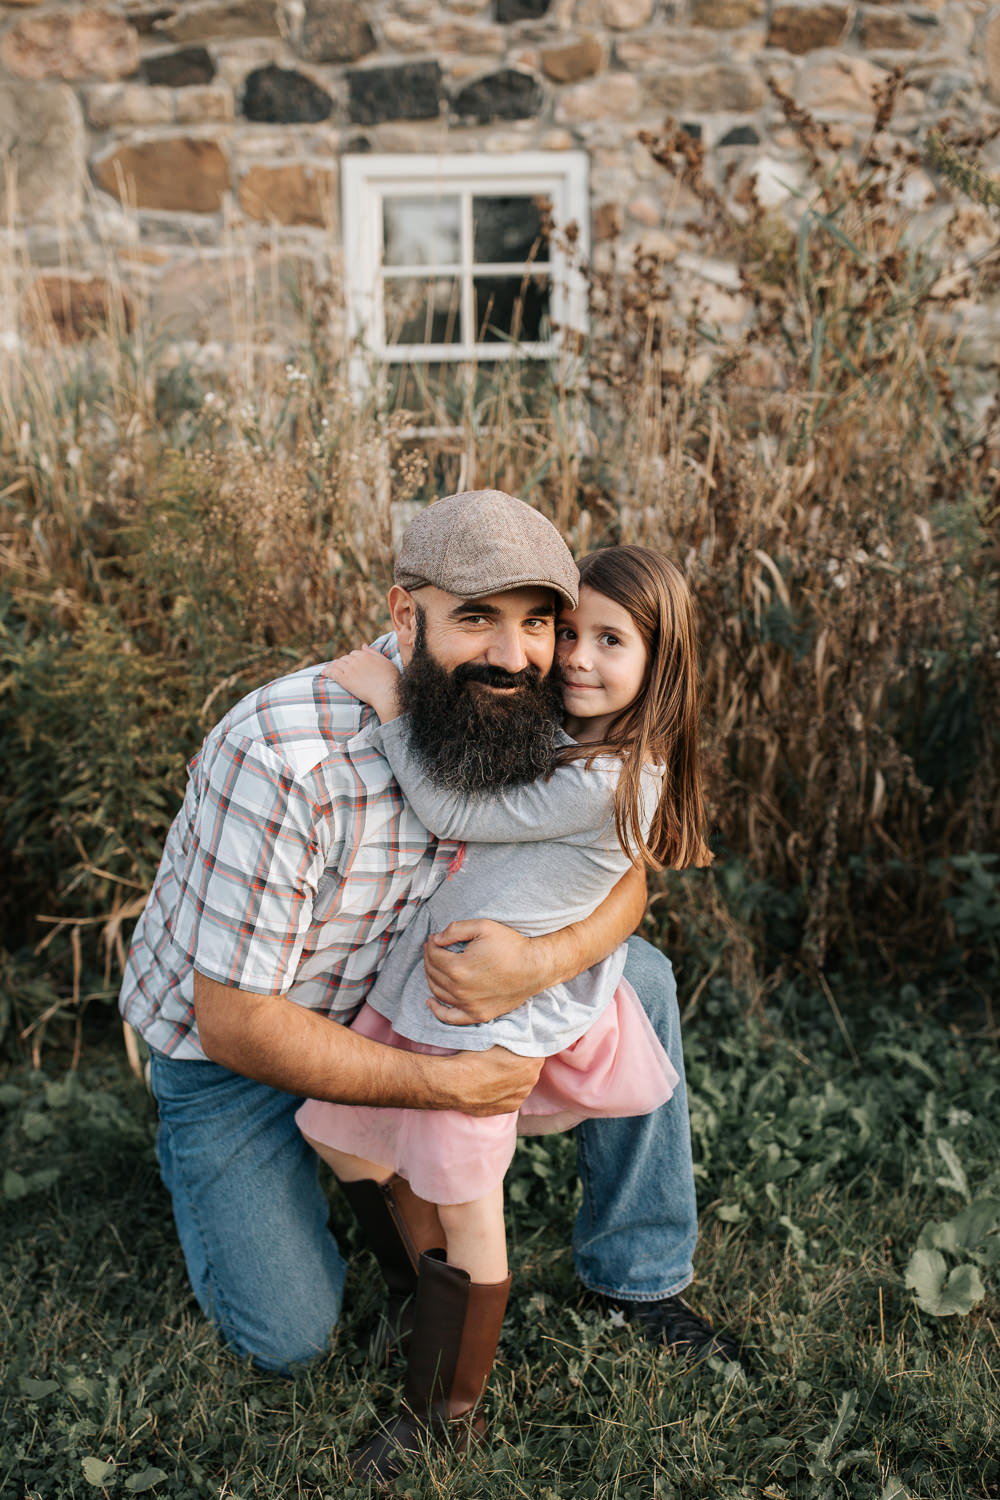 father bending down on one knee in front of old stone house as 5 year old girl hugs him around the neck, dad's arms around daughter, both smiling at camera  - Markham Lifestyle Photos